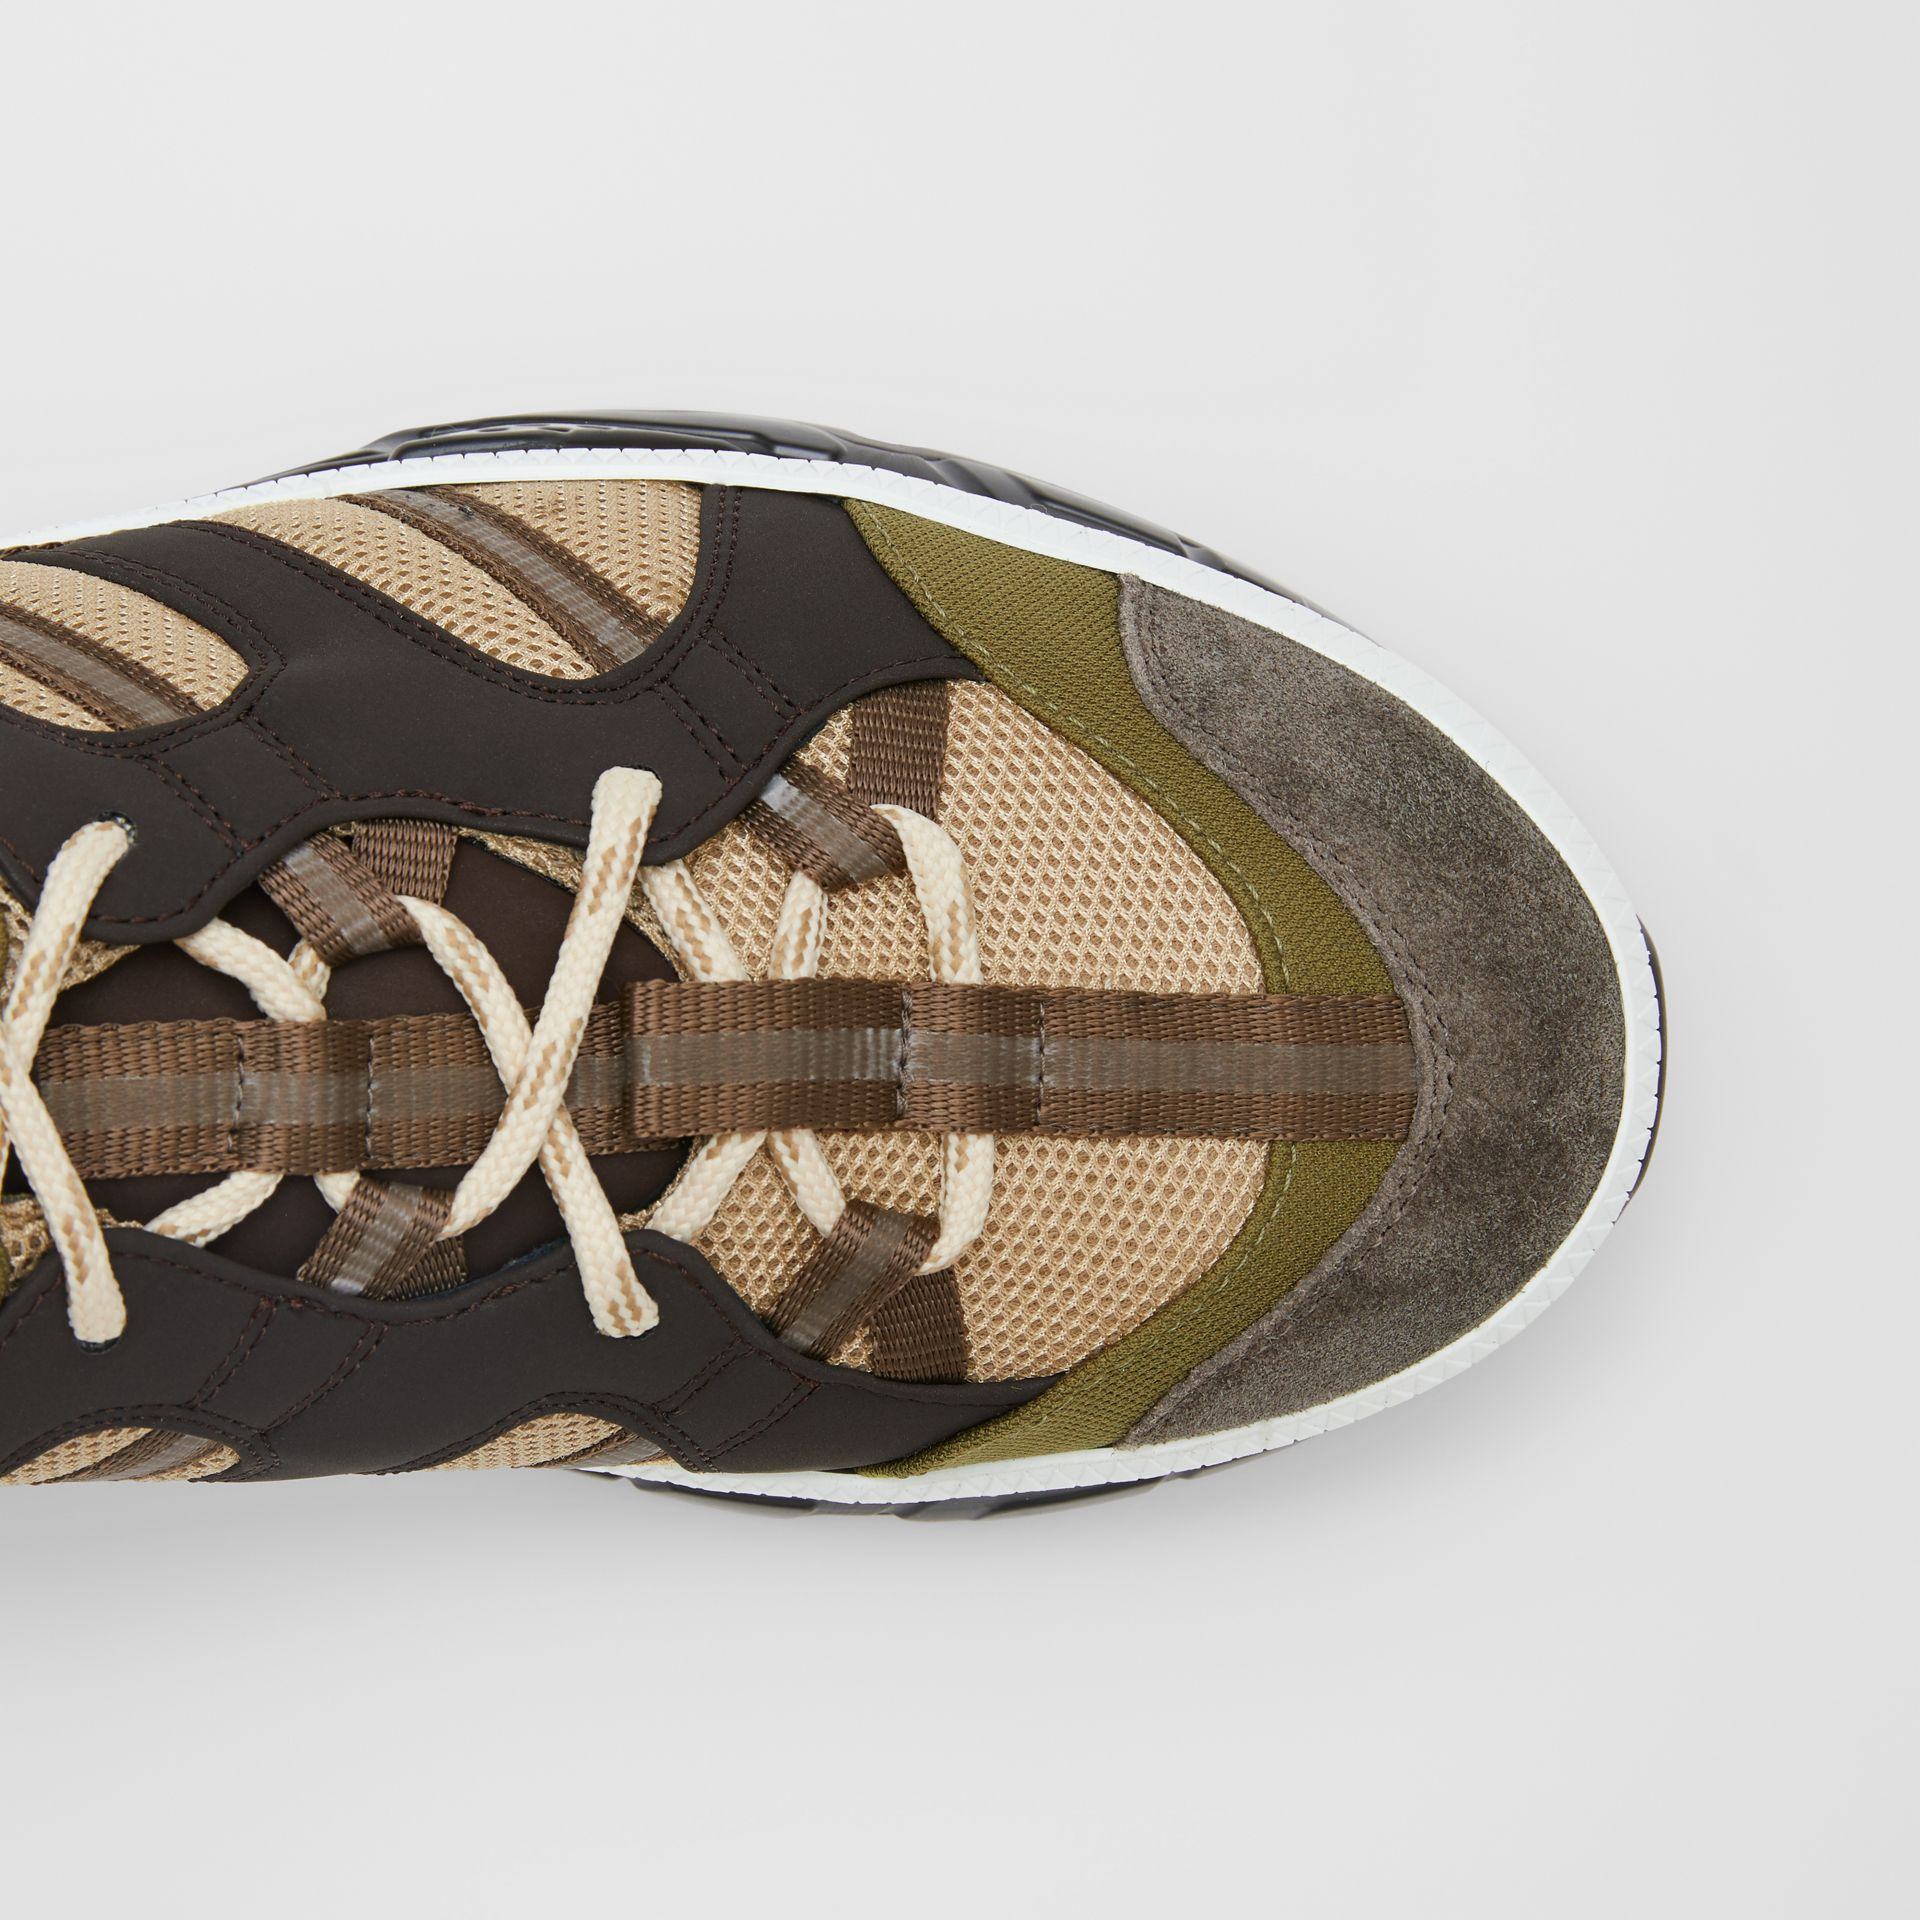 Mesh and Suede Union Sneakers in Khaki / Brown - Men | Burberry Canada - gallery image 1